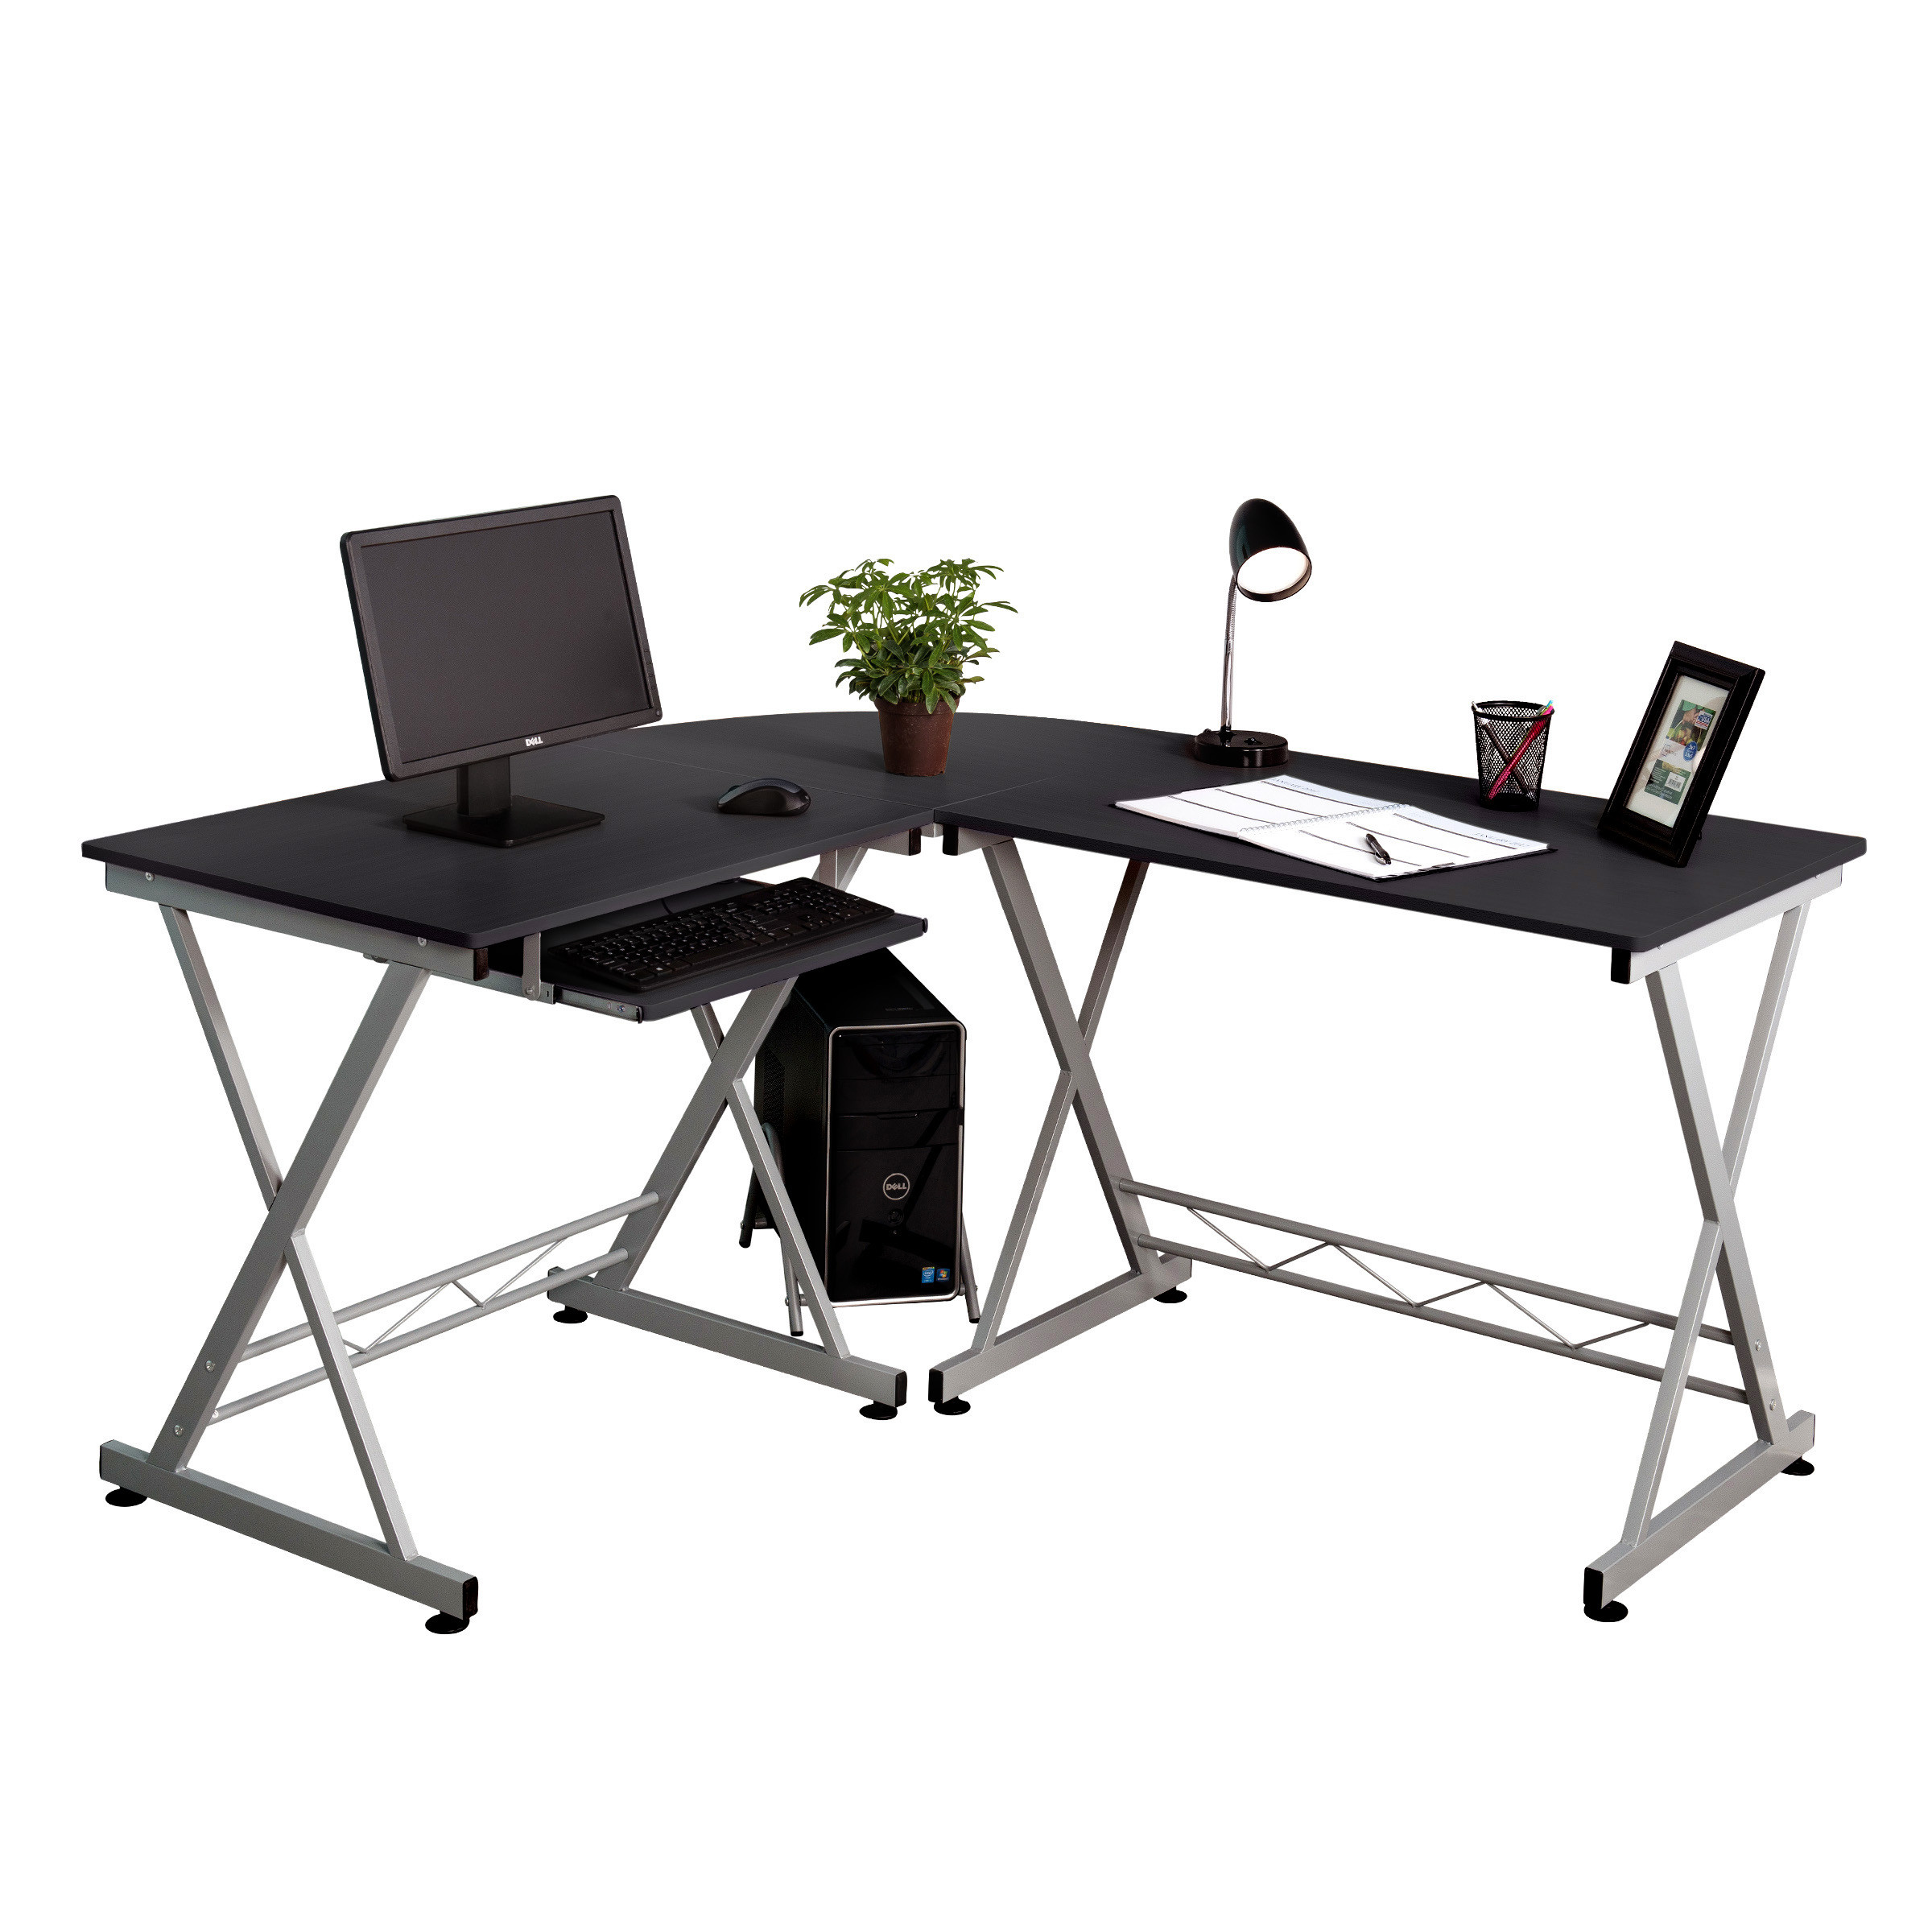 l shaped corner computer desk pc wood laptop table workstation home office black 699936099631 ebay. Black Bedroom Furniture Sets. Home Design Ideas